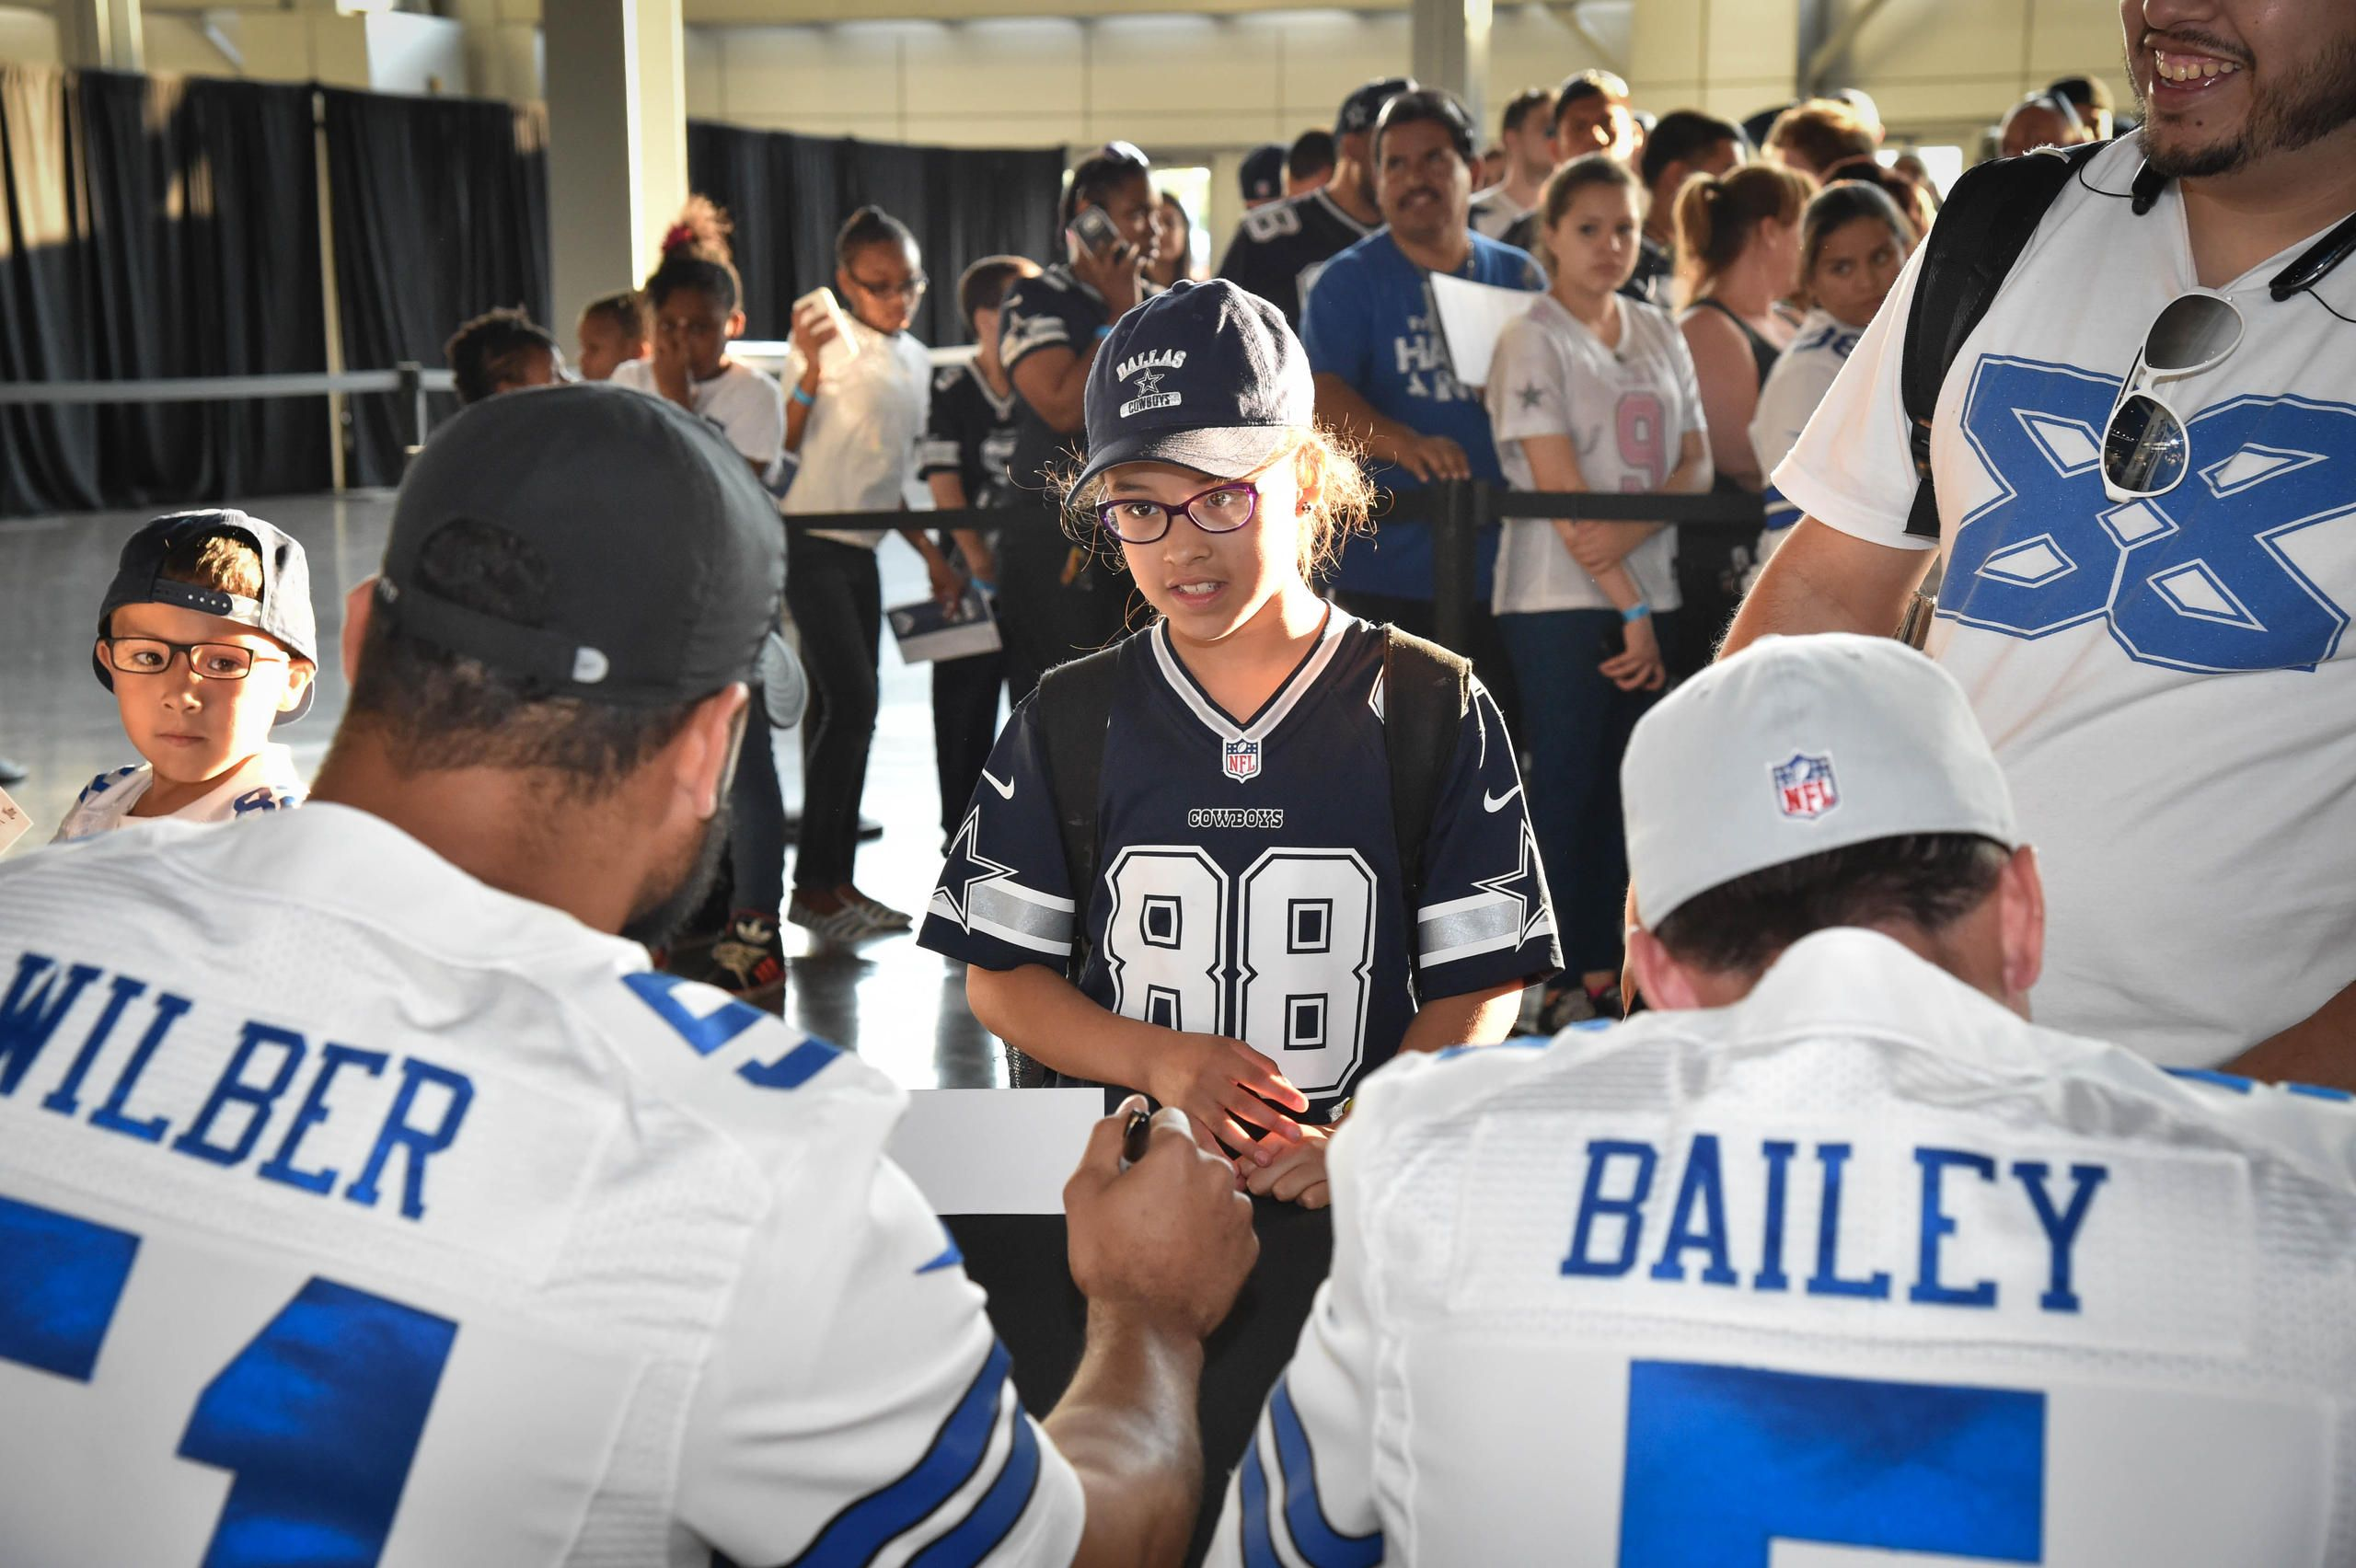 Kyle Wilber and Dan Bailey sign autographs during the draft party.